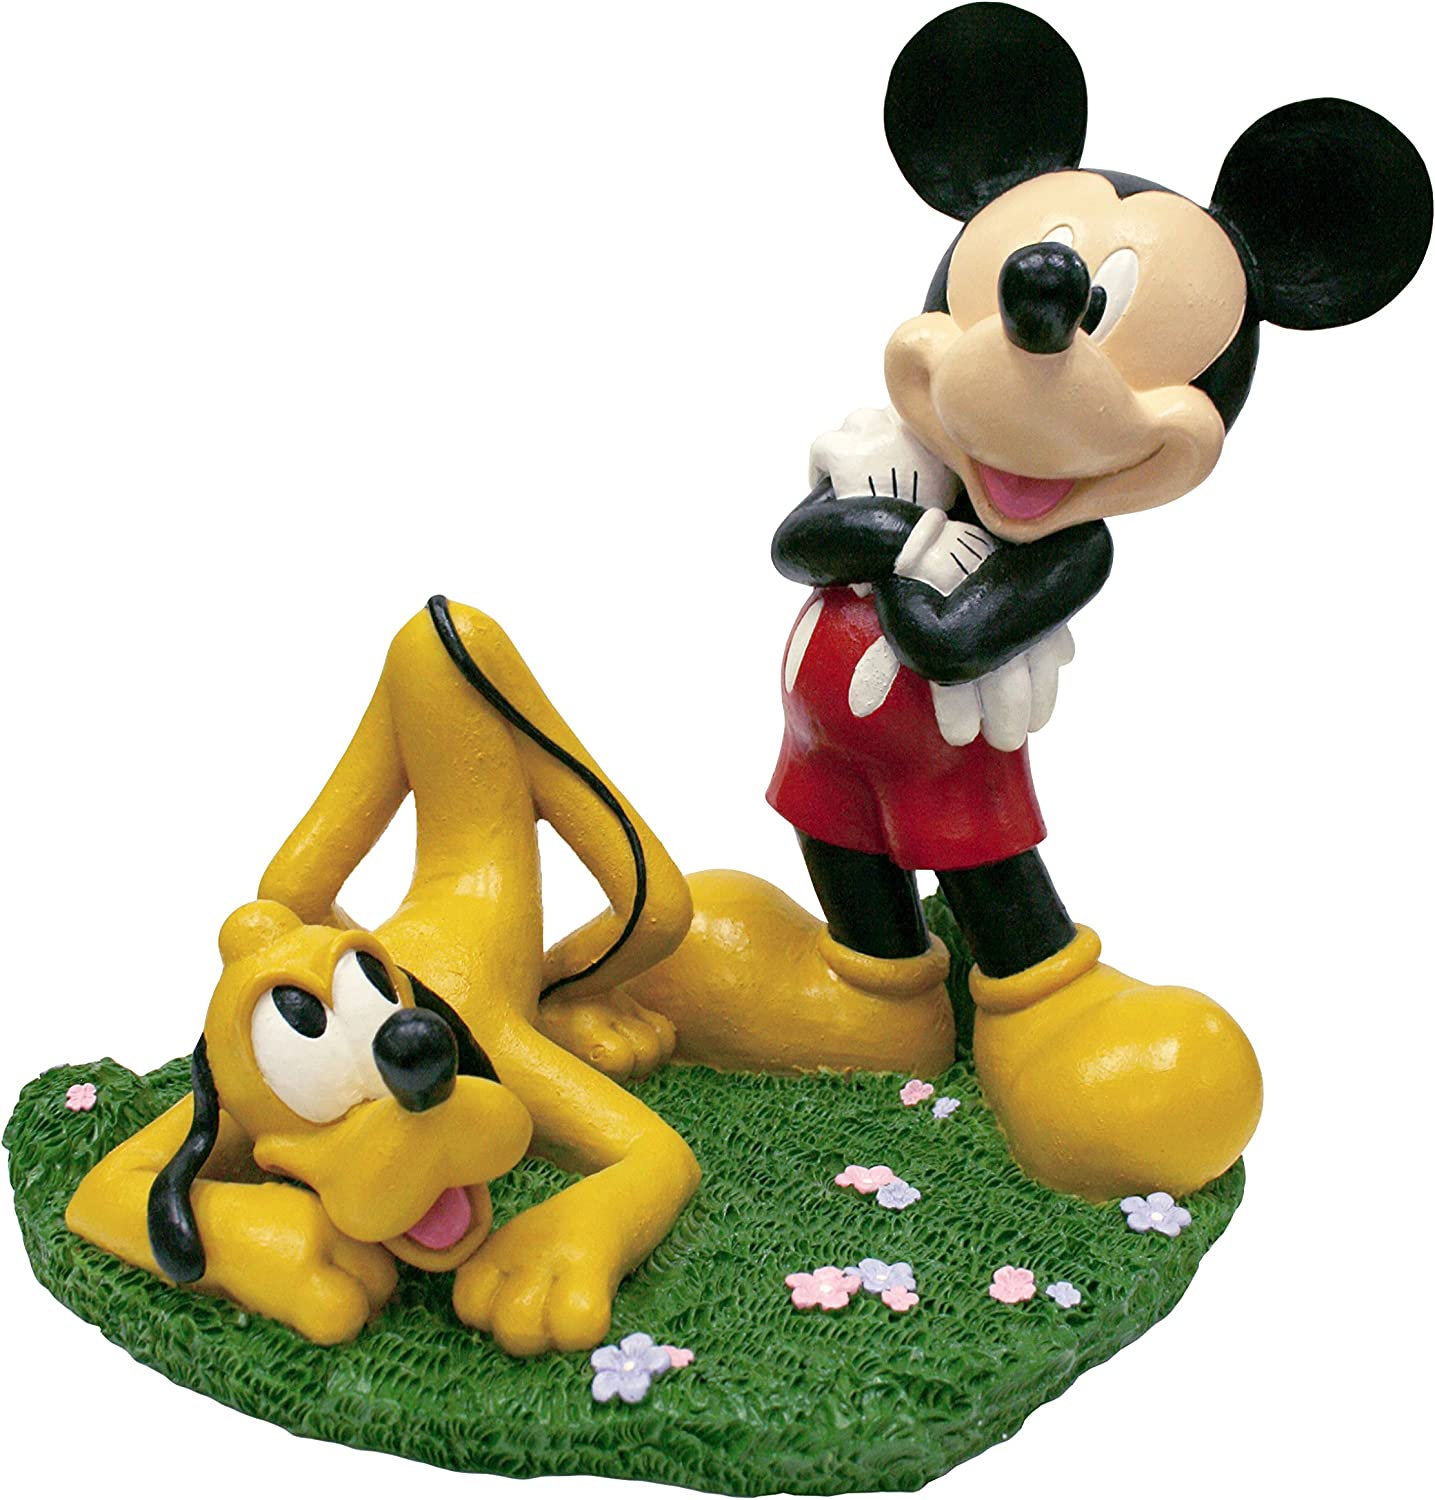 Design International Group LDG88049 Garden Statue, 13 by 12-Inch, Mickey and Pluto 2014